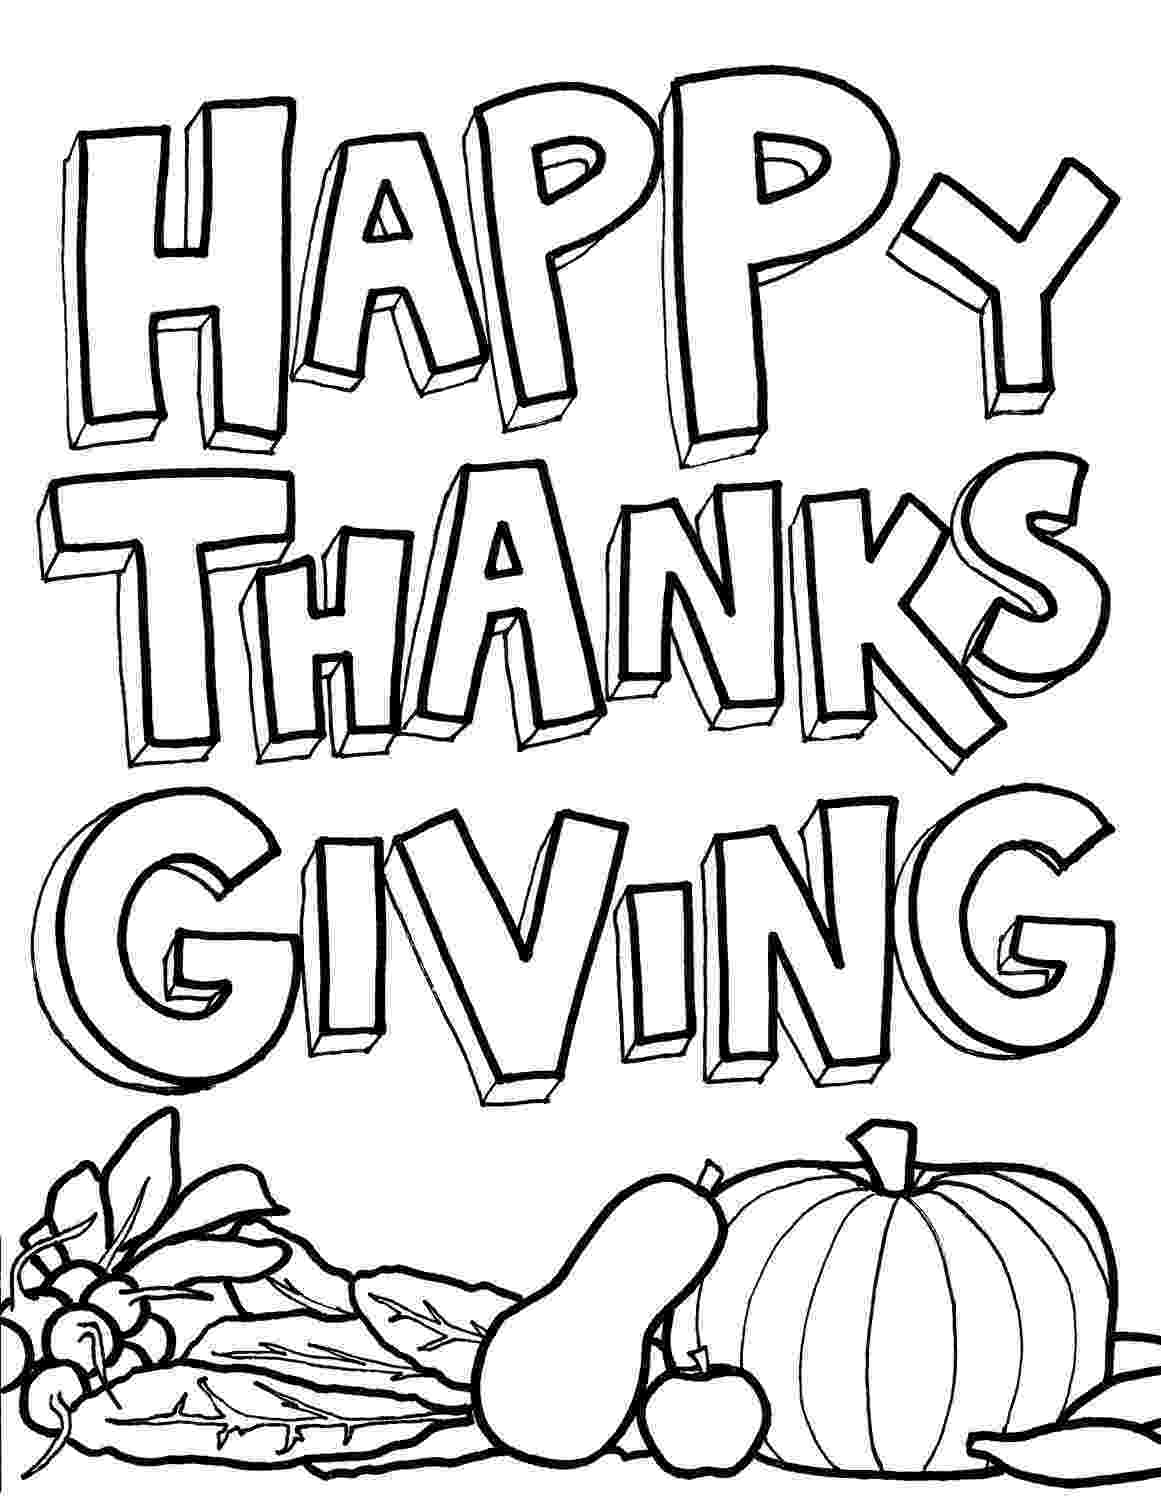 printable coloring pages thanksgiving free thanksgiving day printable coloring pages minnesota miranda free coloring pages thanksgiving printable